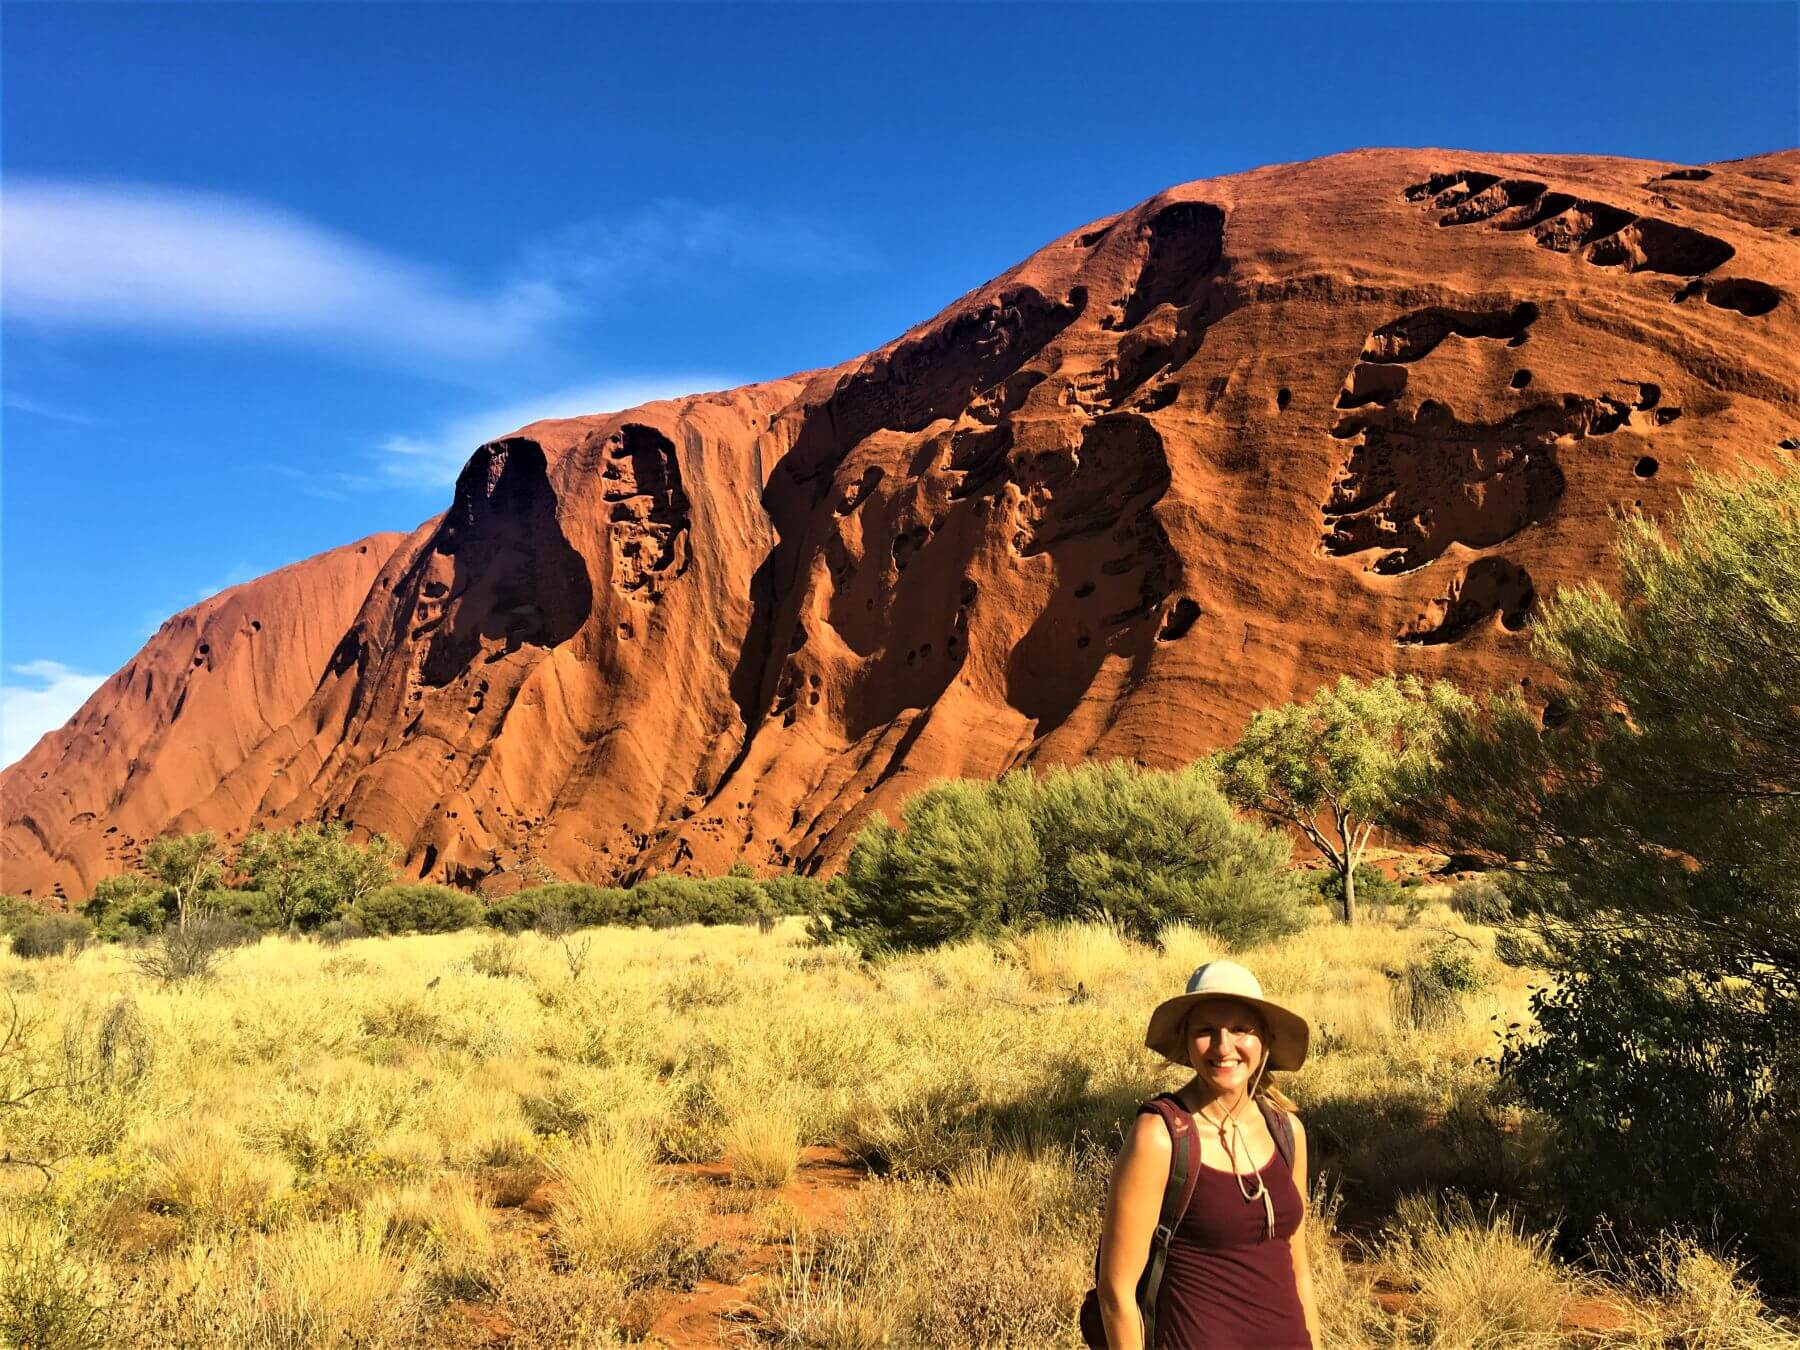 Roter Berg Uluru - Ayers Rock beim Base Walk